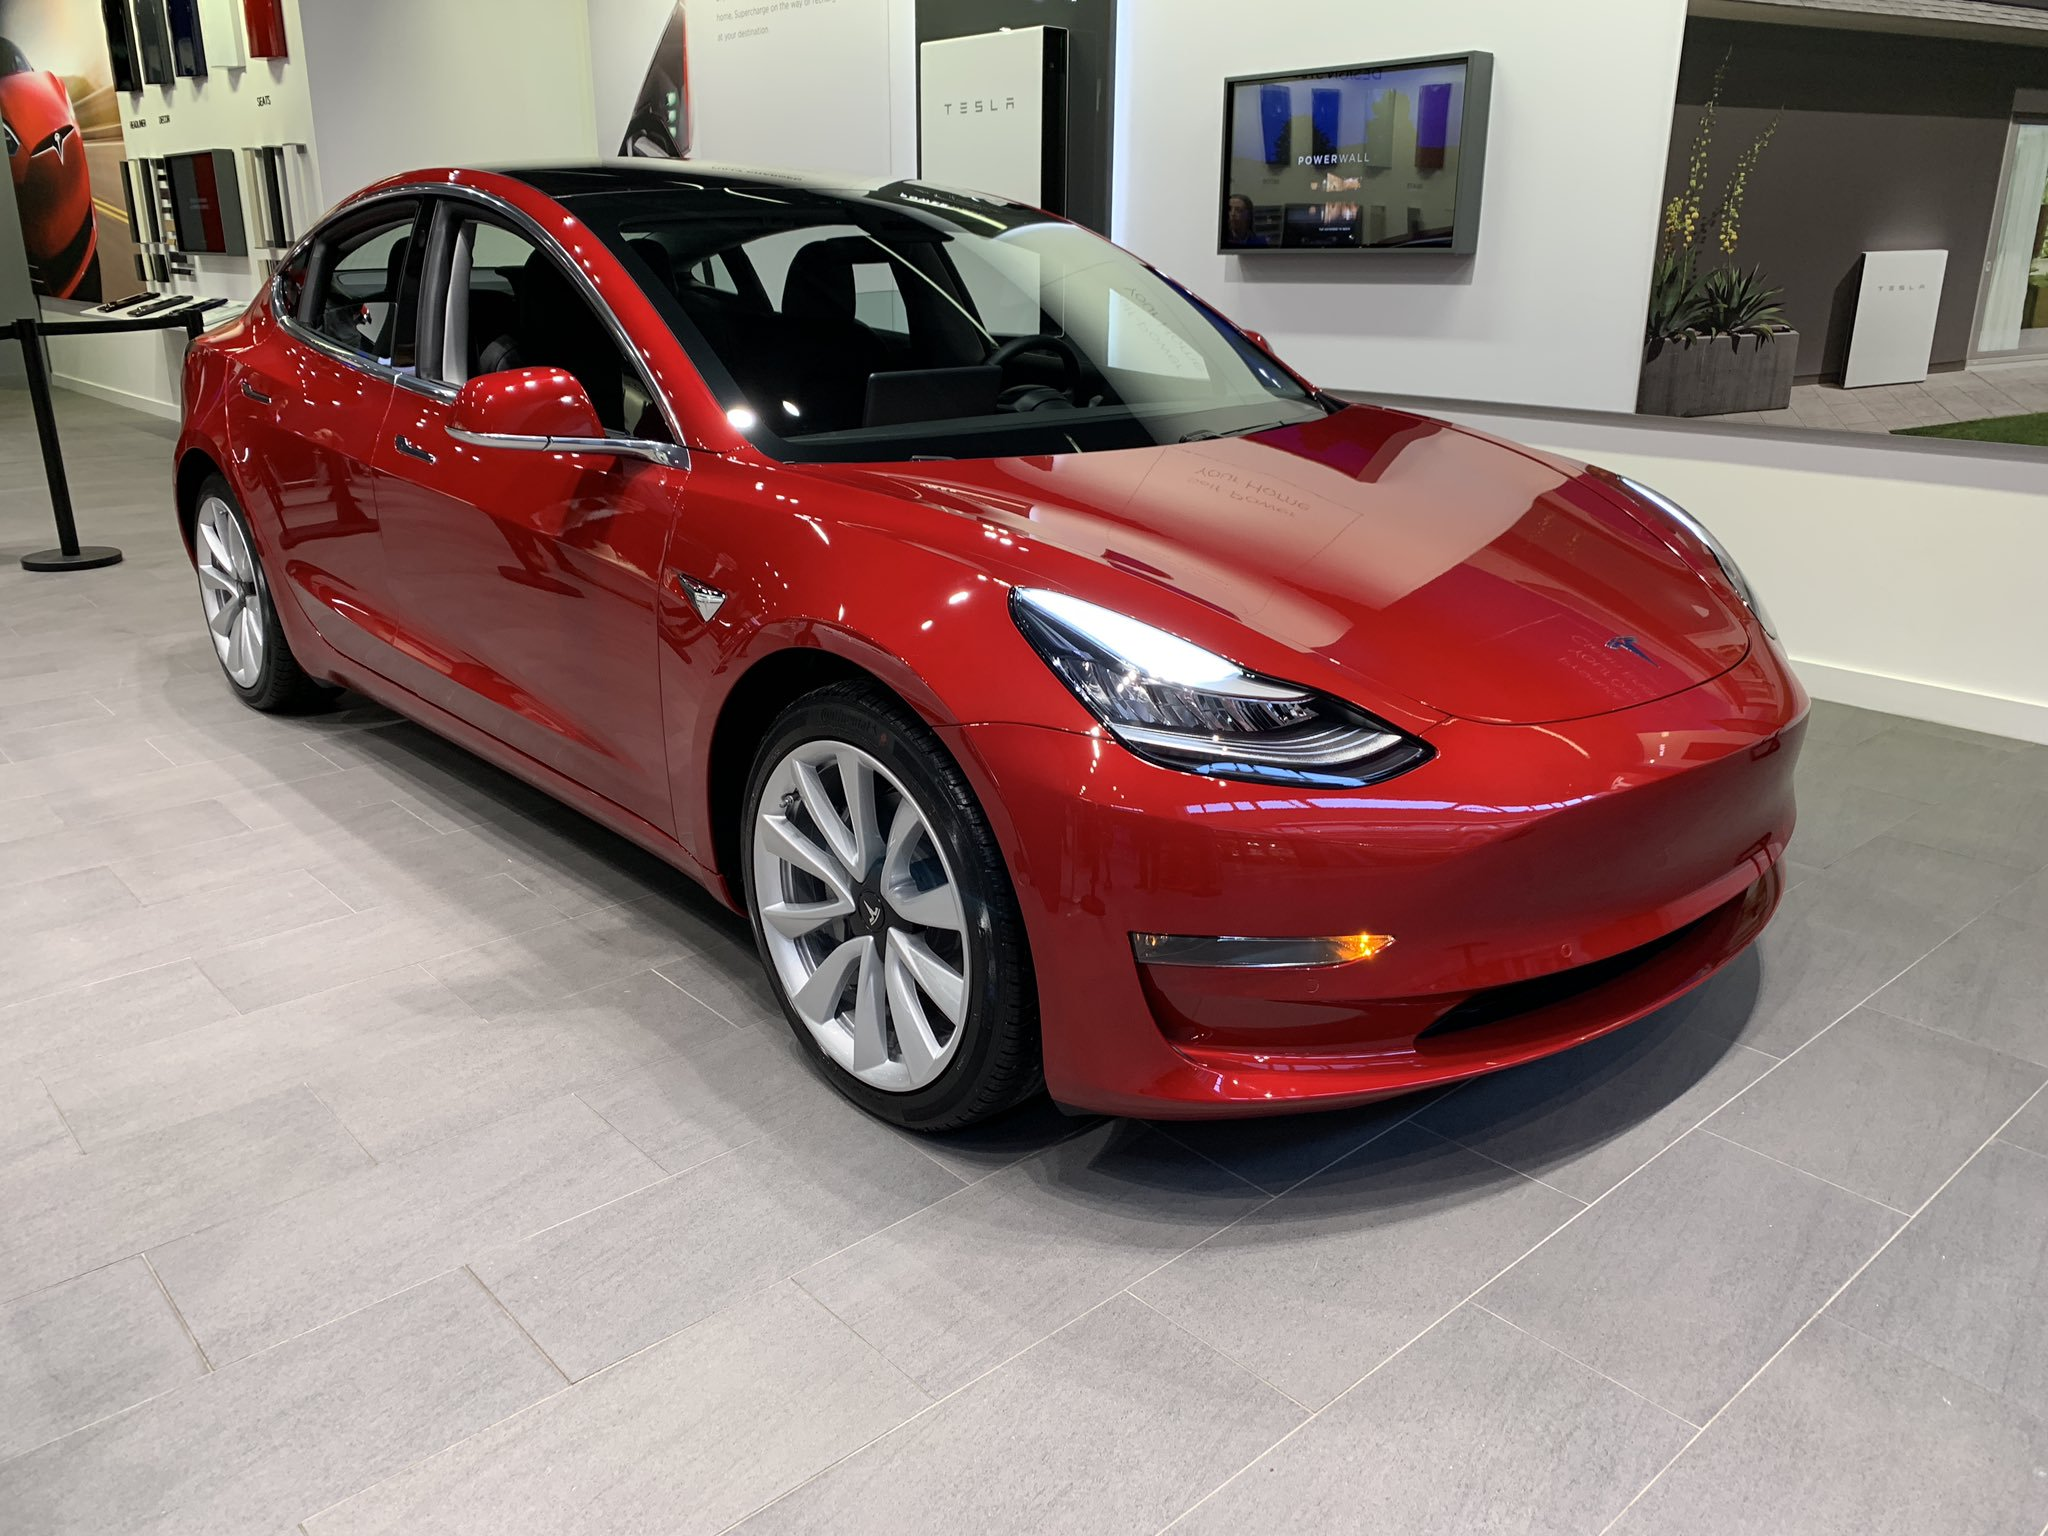 Waiting 3 years for the RHD Tesla Model 3, benefits of being at the back!